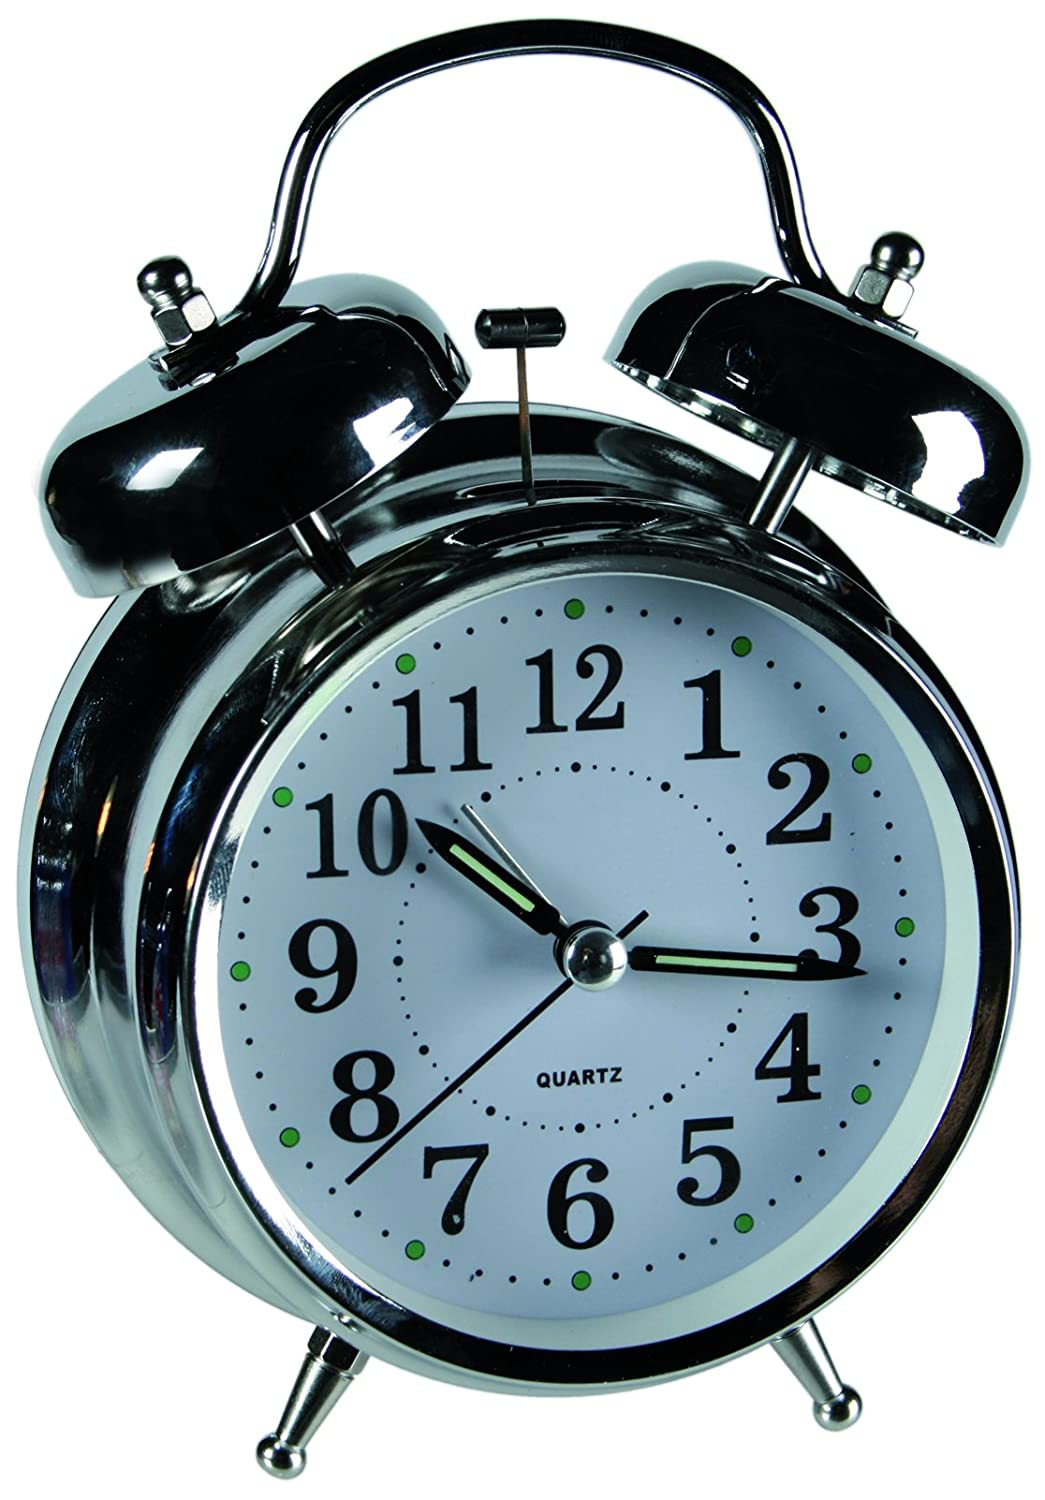 Out of the blue Glow in the Dark Alarm Clock, Metal, Chrome, 8.0 x 6.0 x 9.0 cm 79/3073